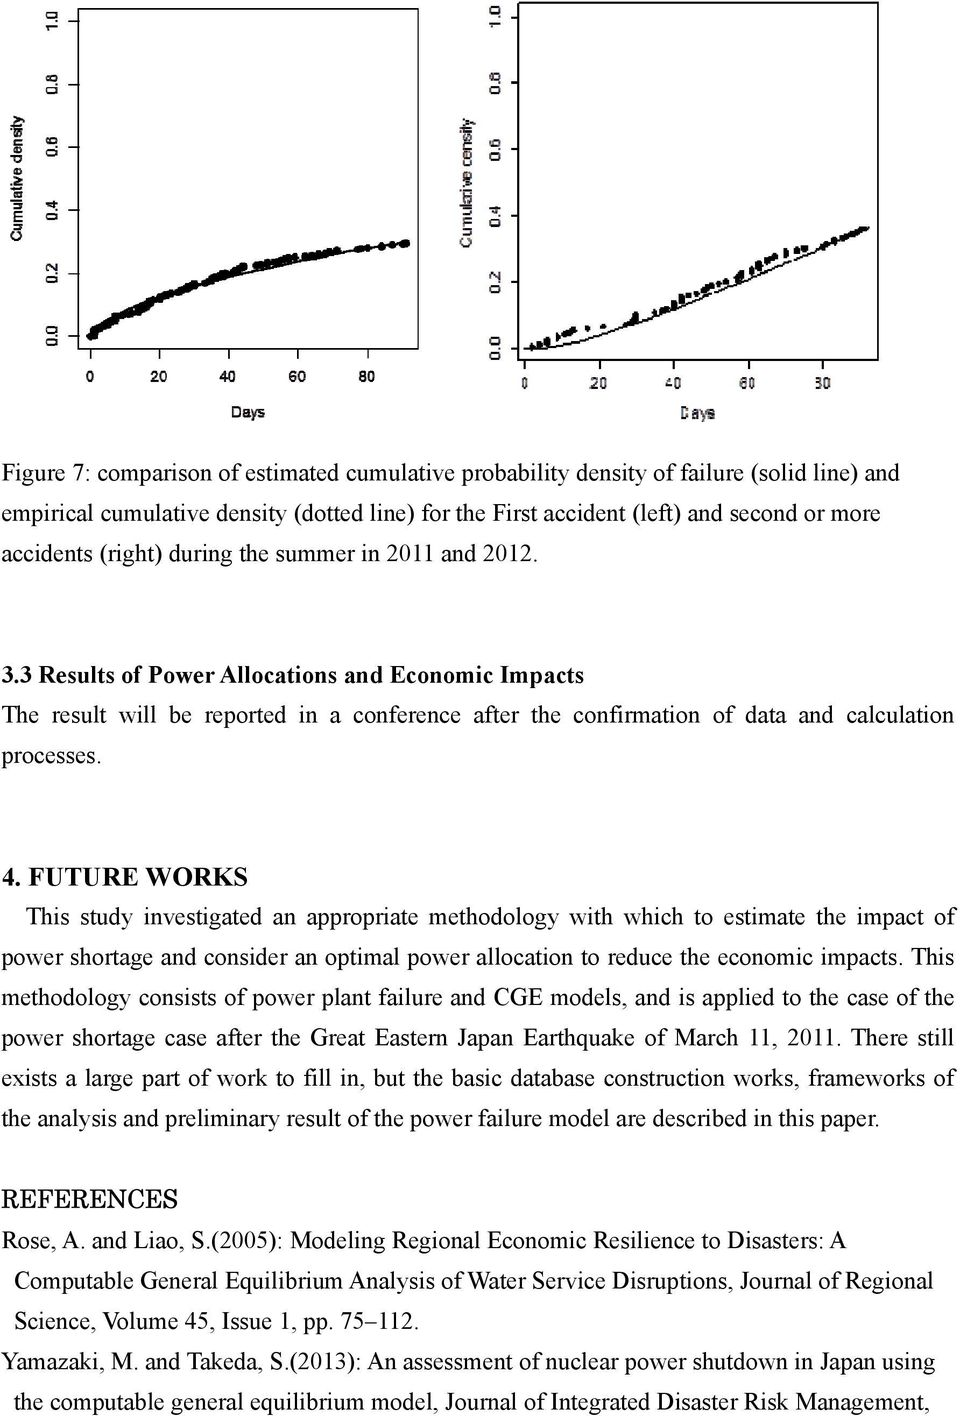 4. FUTURE WORKS This study investigated an appropriate methodology with which to estimate the impact of power shortage and consider an optimal power allocation to reduce the economic impacts.